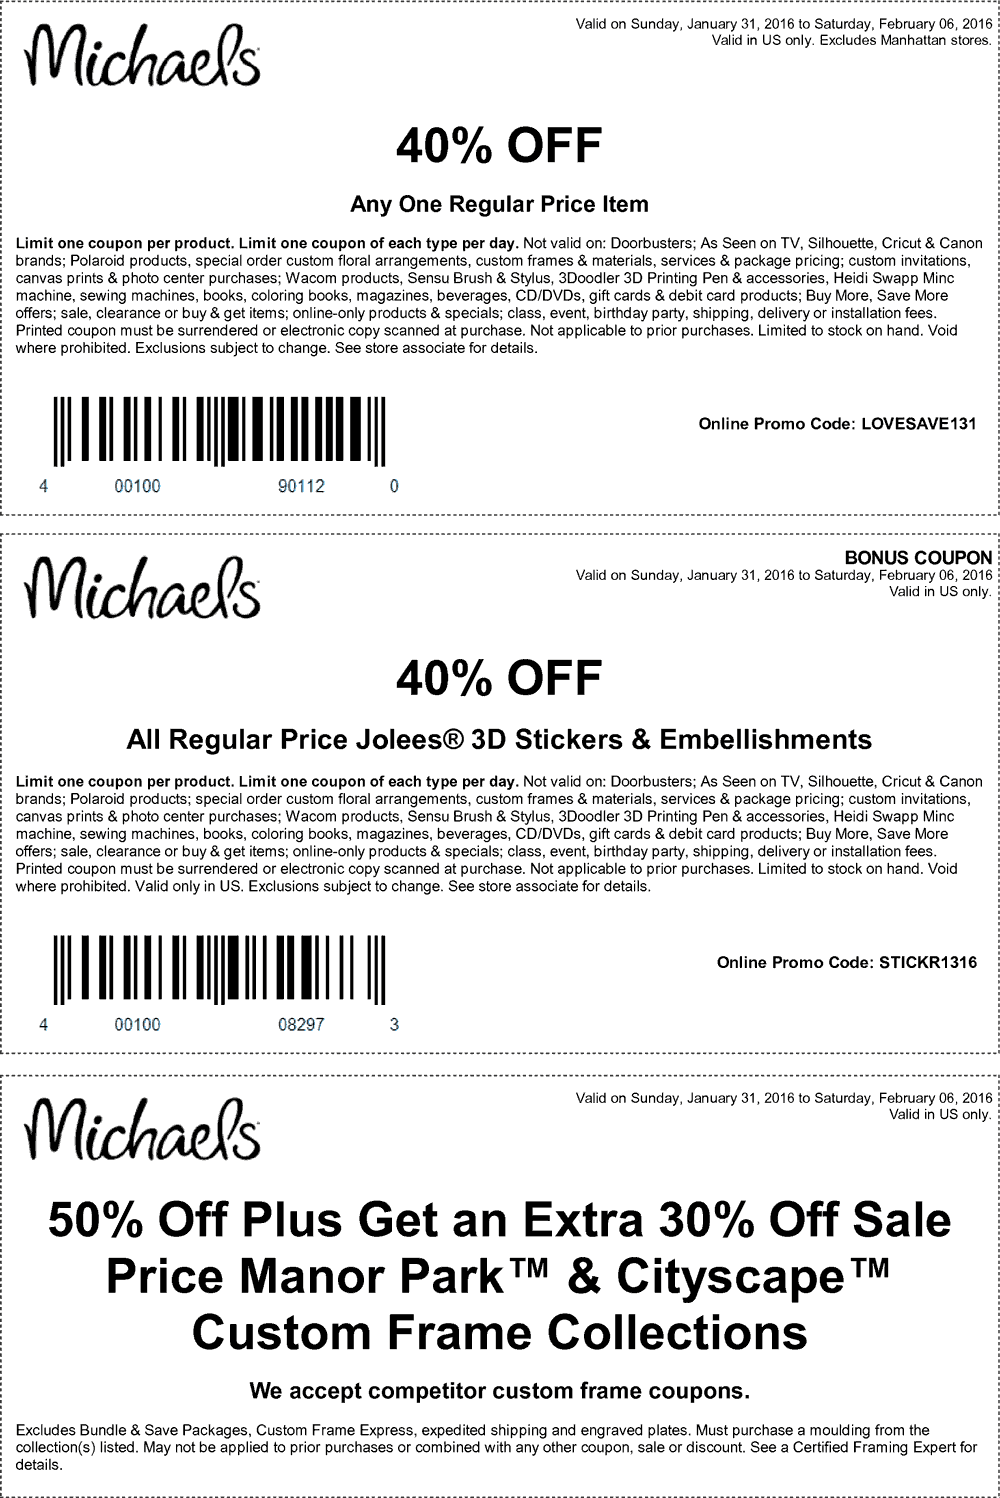 Michaels Coupon April 2017 40% off a single item at Michaels, or online via promo code LOVESAVE131